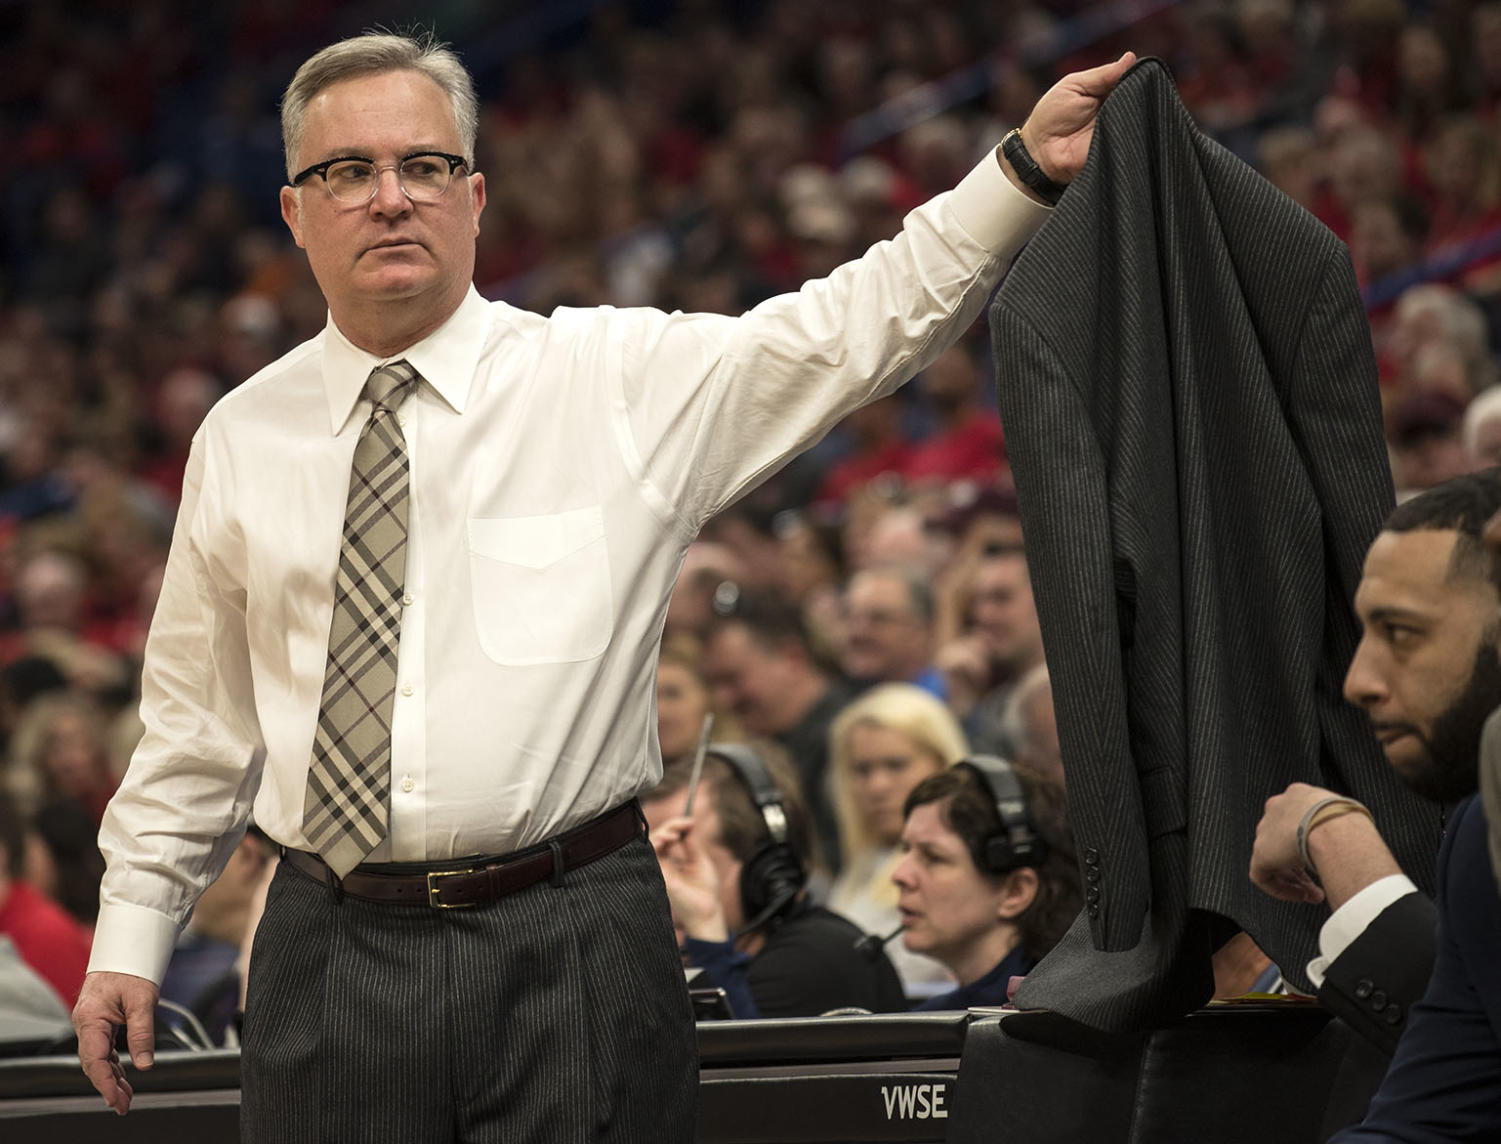 SIU+coach+Barry+Hinson+takes+off+his+jacket+Saturday%2C+March.+3%2C+2018%2C+during+the+Salukis%E2%80%99+76-68+loss+against+the+Illinois+State+Redbirds+at+the+Missouri+Valley+Conference+%22Arch+Madness%22+tournament+in+St.+Louis.+%28Athena+Chrysanthou+%7C+%40Chrysant1Athena%29